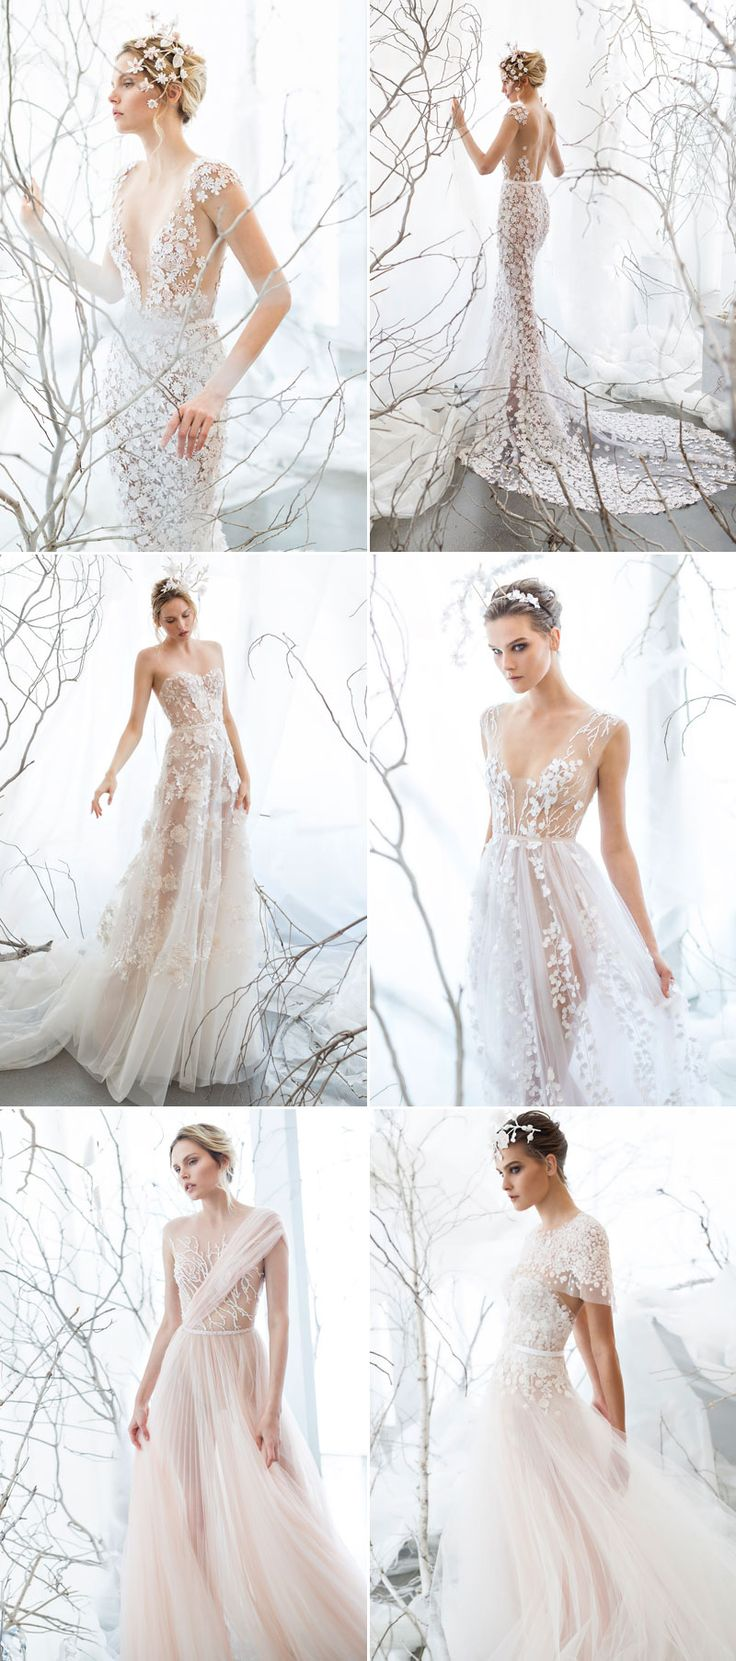 A whimsical take on the traditional wedding dress. This elegant, lacy dress is perfect for your woodland or ethereal wedding. See more wedding dress ideas here: https://www.praisewedding.com/archives/2722